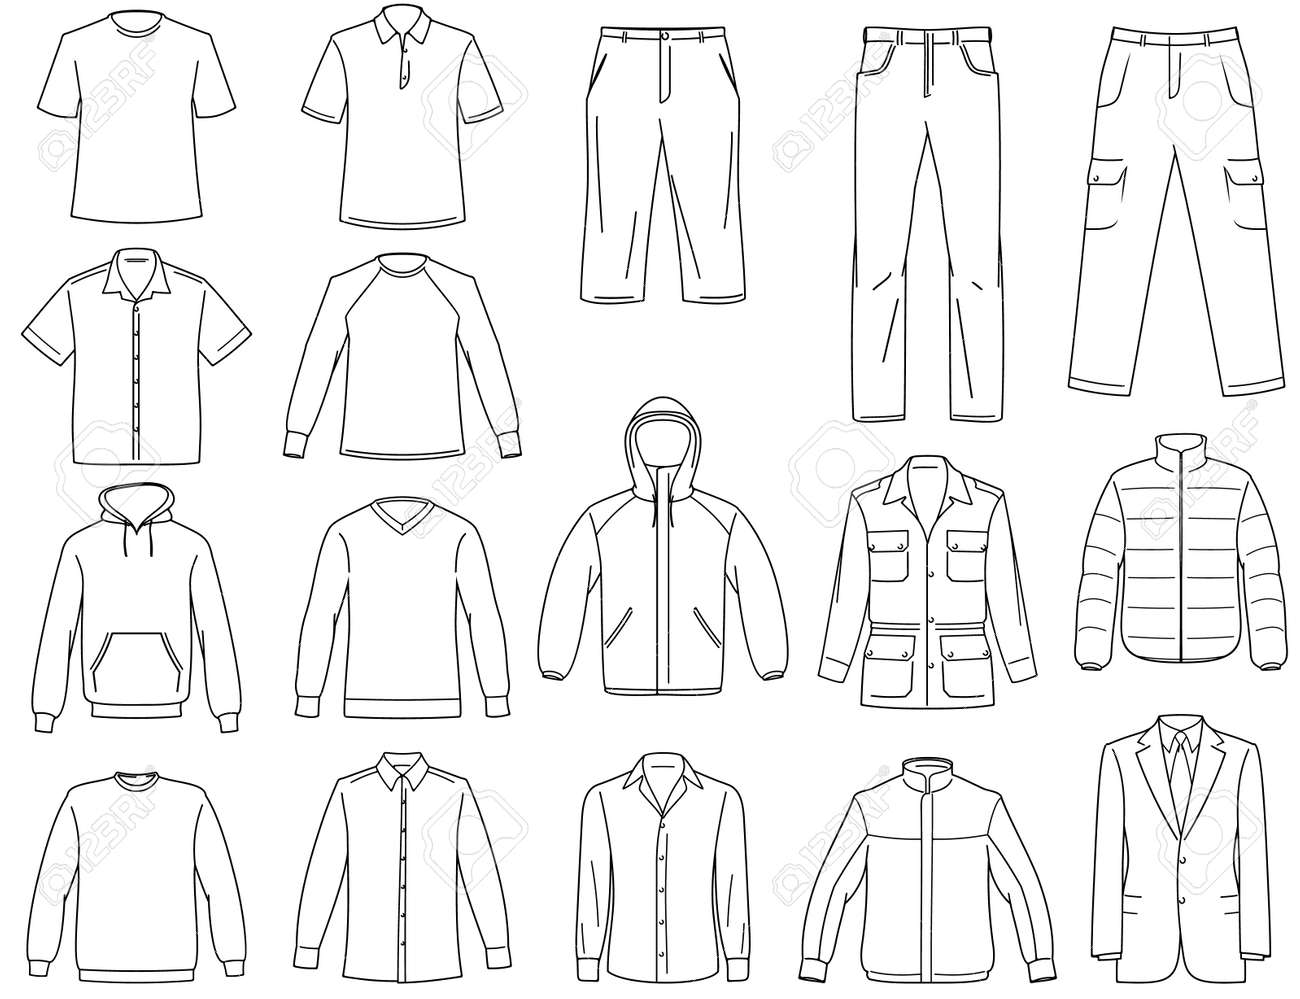 Clothes Templates. 25 best ideas about clothing templates on ...